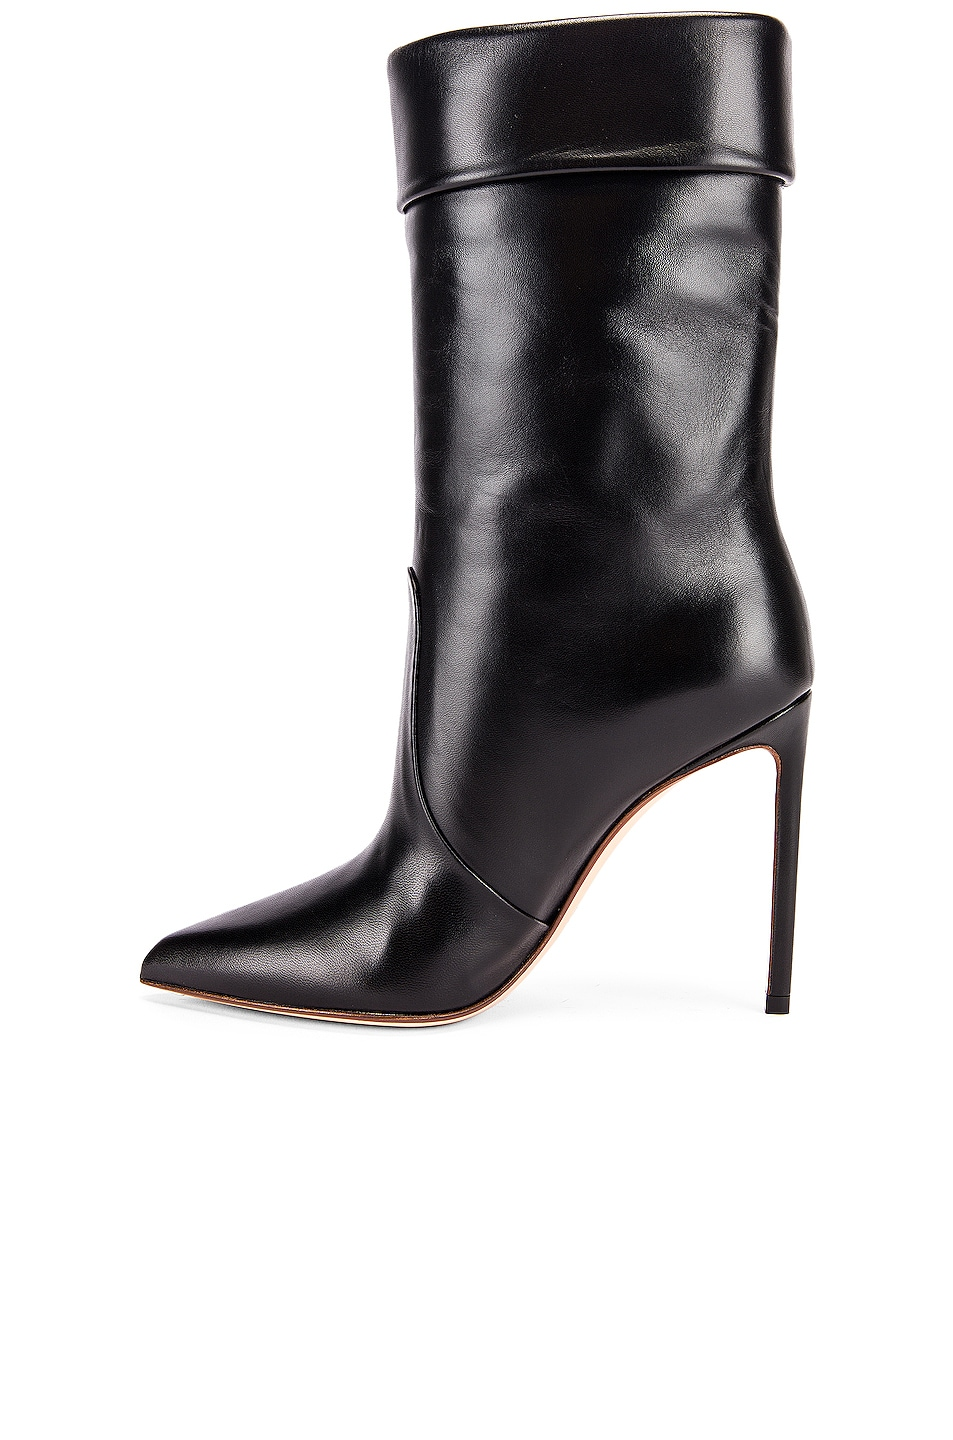 Image 5 of FRANCESCO RUSSO Leather Booties in Black